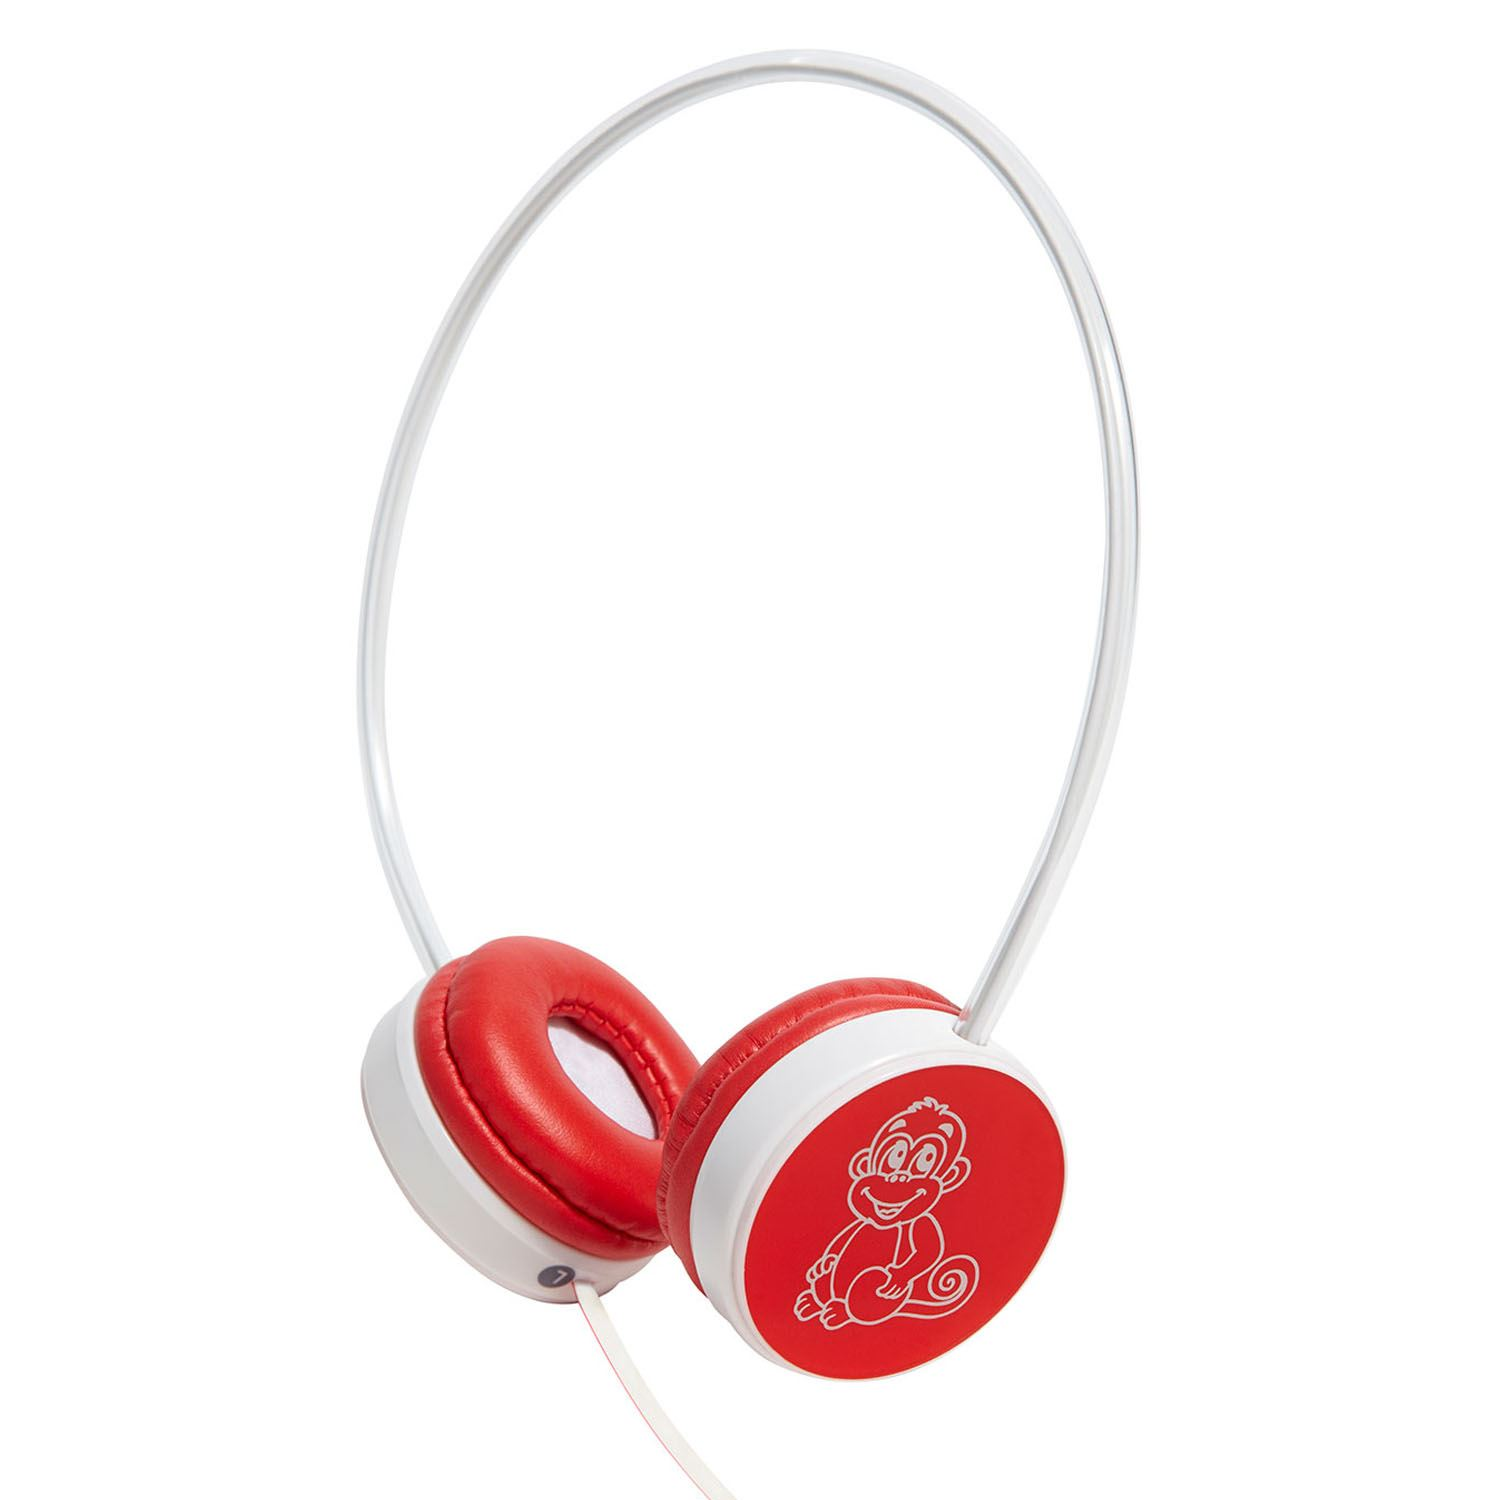 Iphone earbuds extra long cord - iphone 7 earbuds rubber